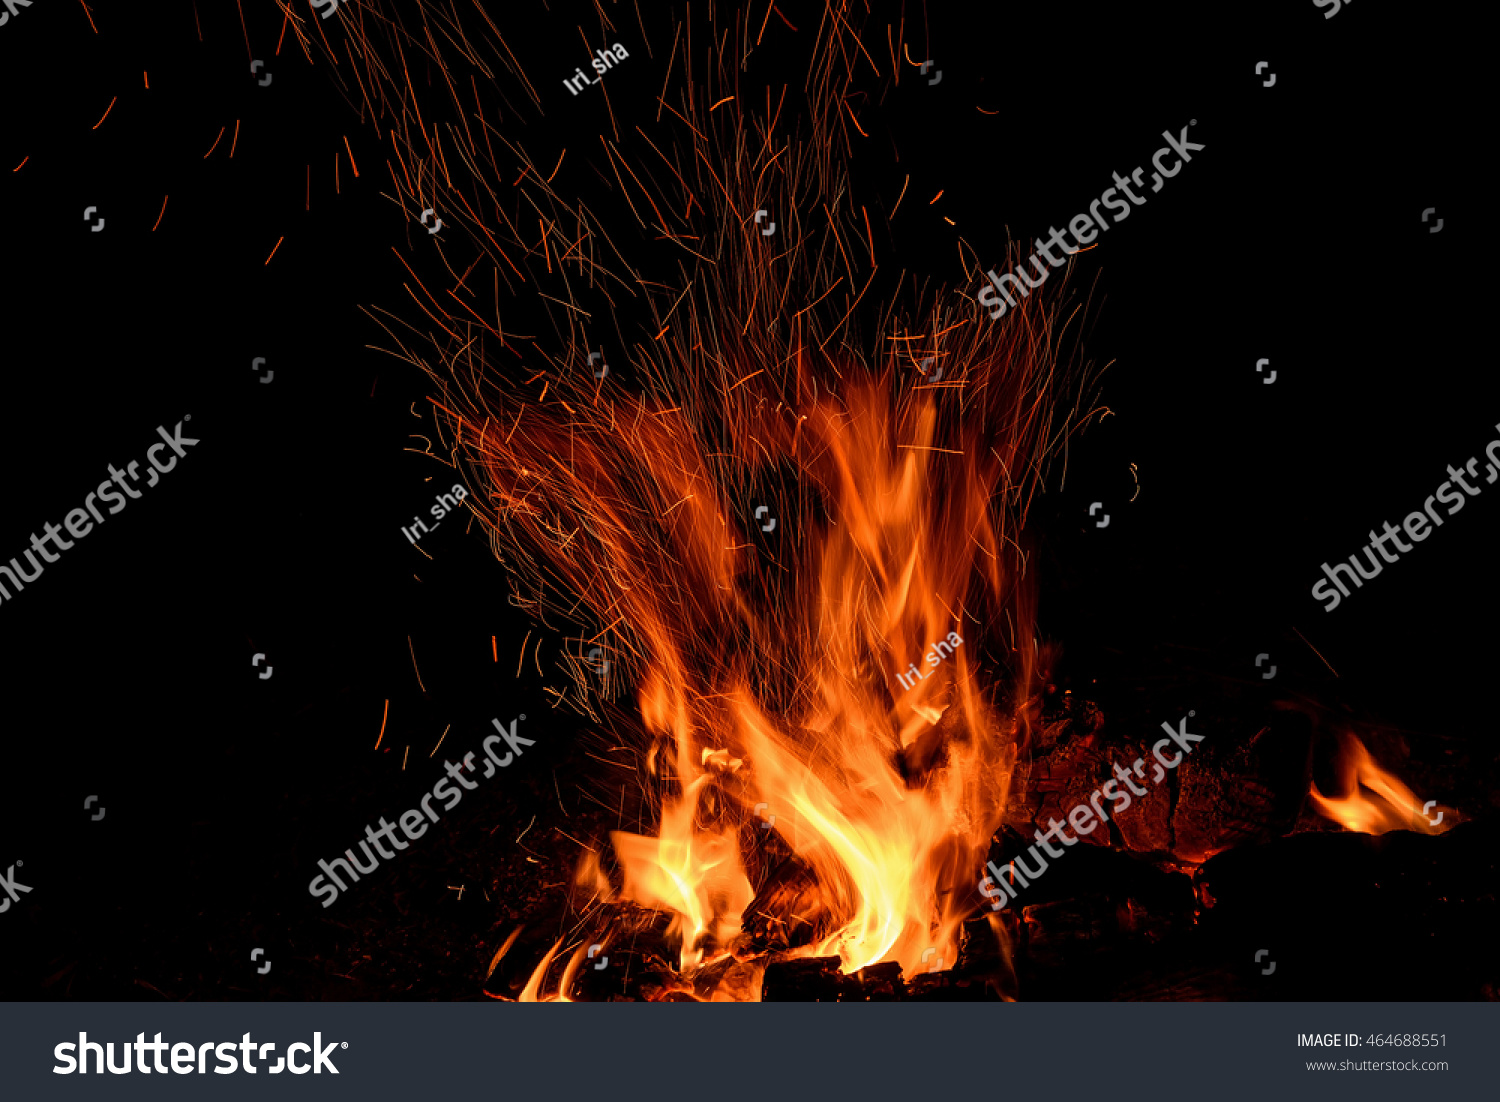 Red Orange Spurts Flames Charcoal Firewood Stock Photo 464688551 ...